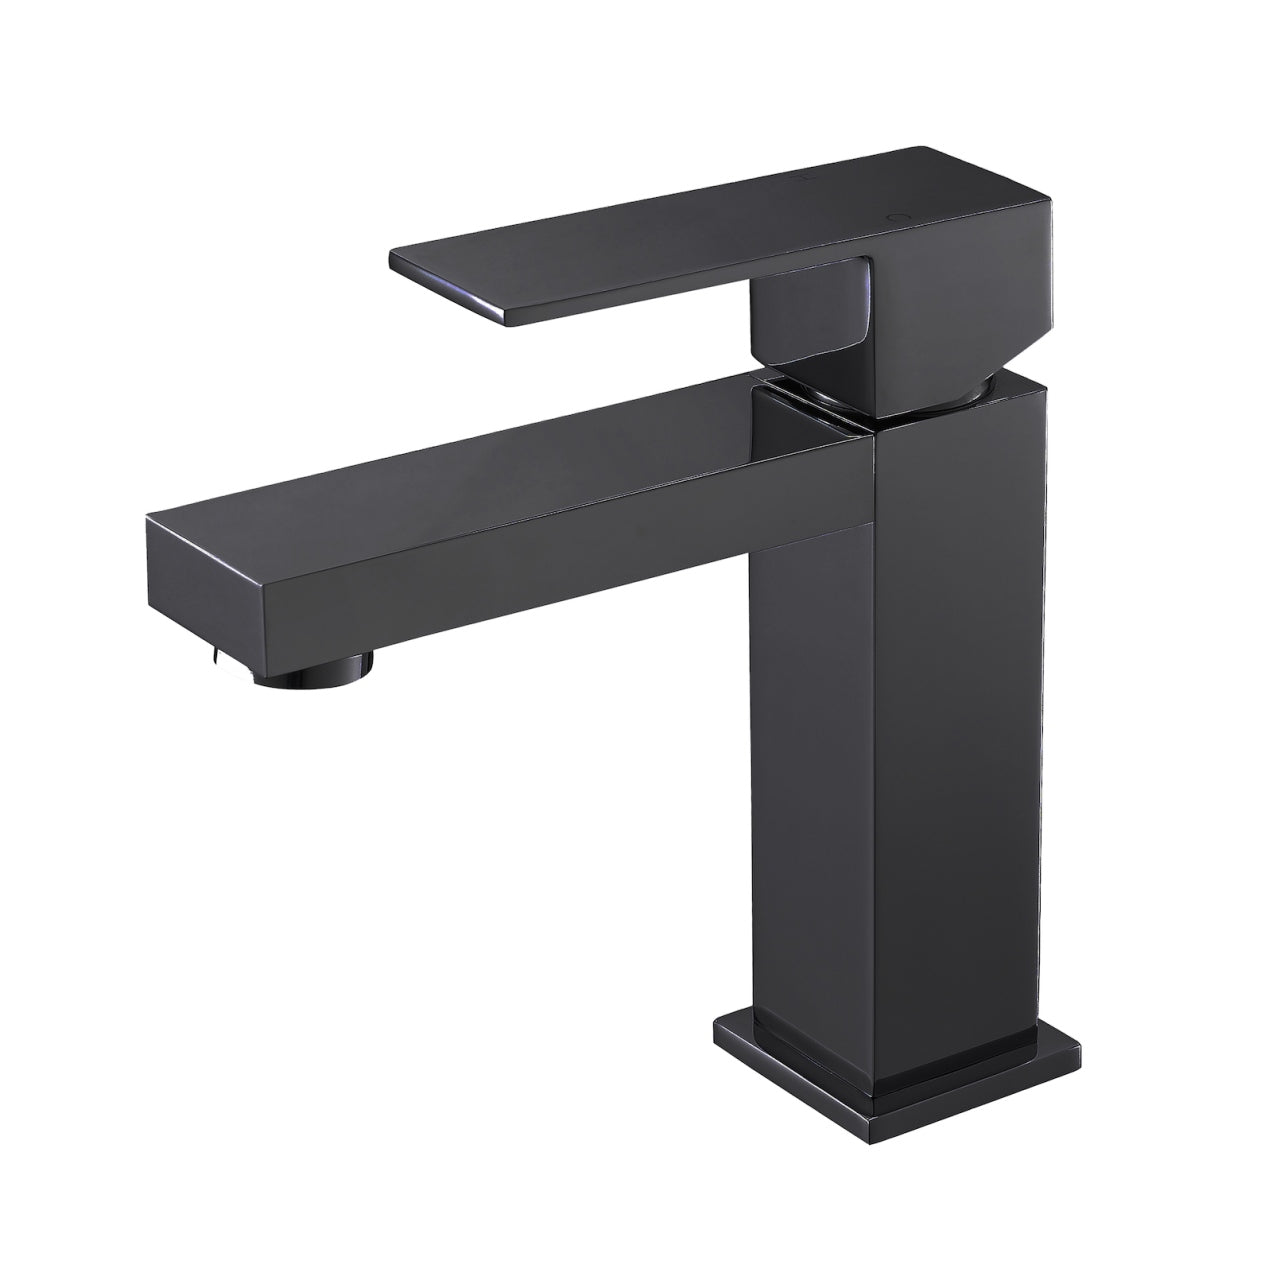 AQUA KUBO- Matt Black, Single Handle, Bathroom Faucet - Construction Commodities Supply Inc.